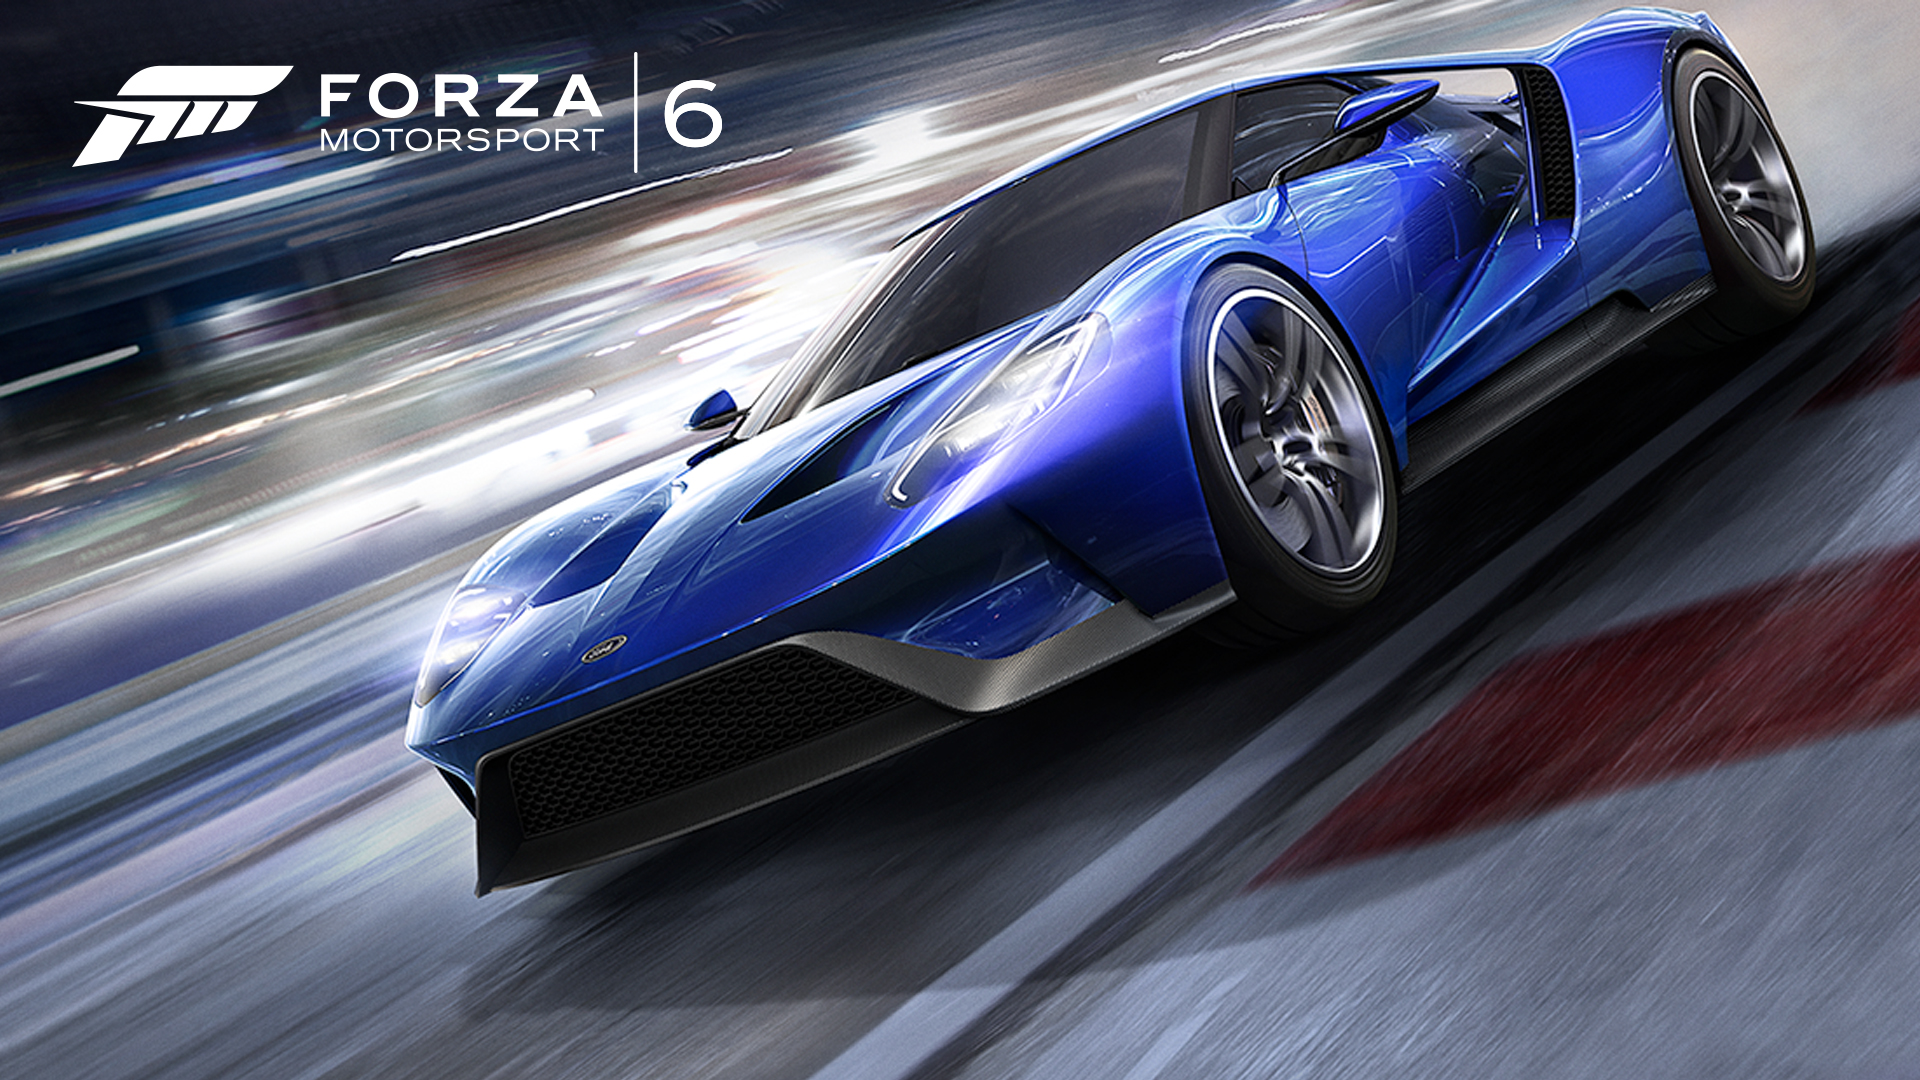 Forza Motorsport 6 artwork